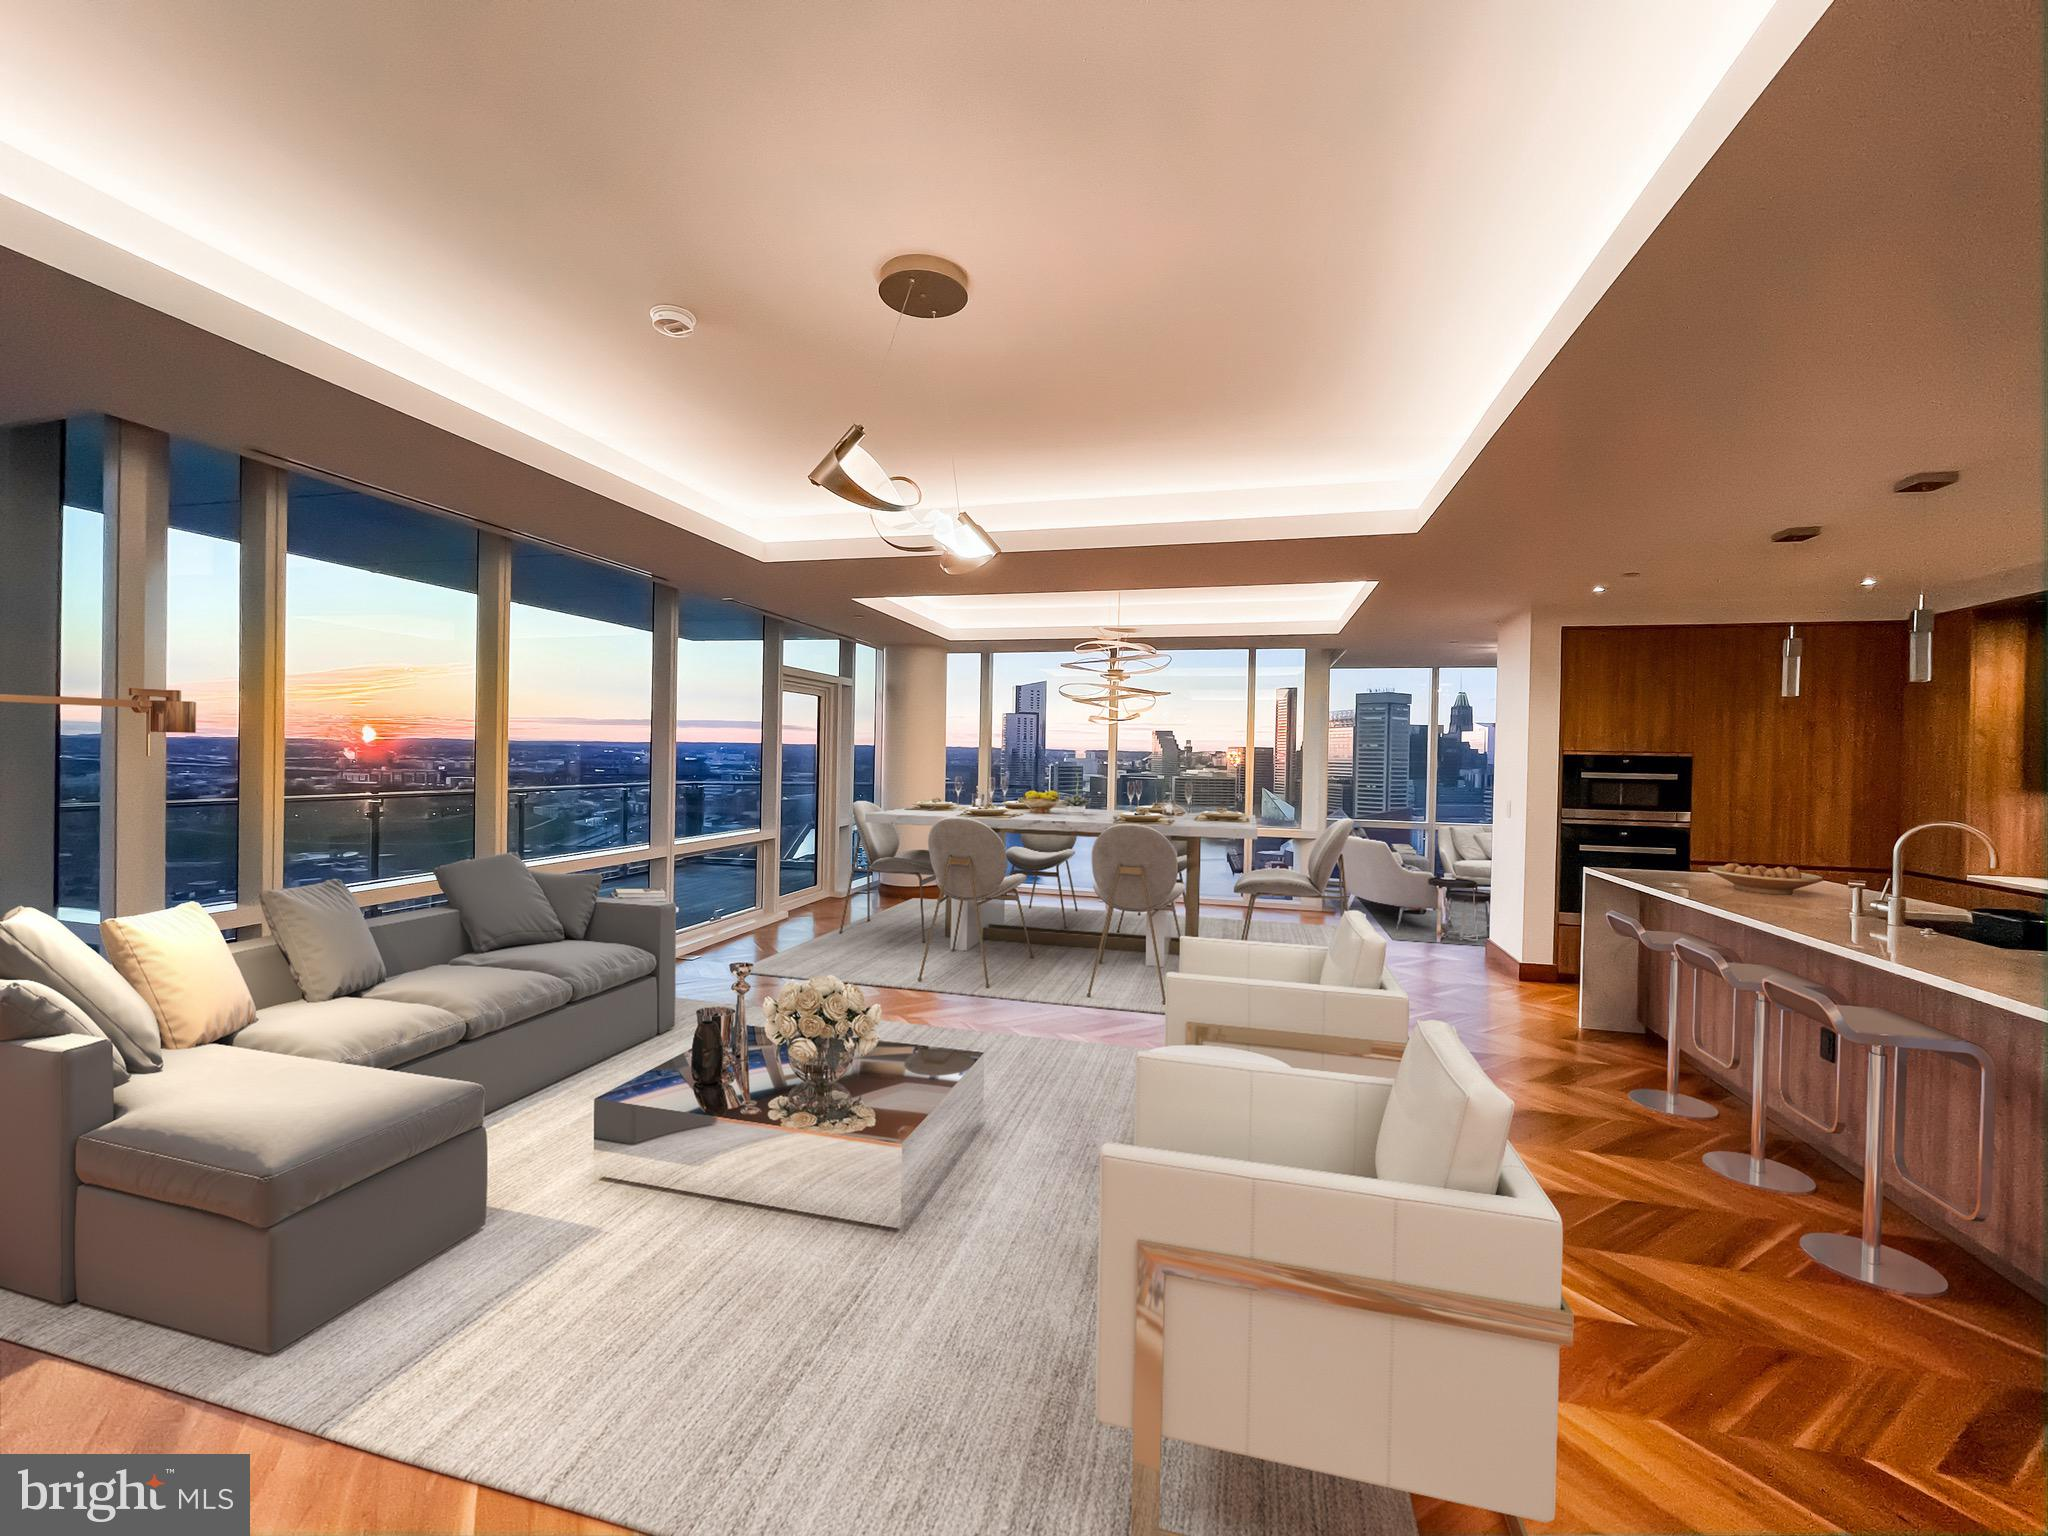 "Incredibly rare opportunity to own one of only three ""A"" model floorpans in the Four Seasons.  These residences were the first to sell out - and for good reason !!  They have the most spectacular panoramic view not only in the building - but along Baltimore's Inner Harbor.  3042 sq ft (interior) of the most luxurious living Baltimore has to offer.  Floor to ceiling windows (glass walls) with views of Canton (and beyond) Locus Point, Federal Hill, The Inner Harbor and even Camden Yards and Raven Stadium.  This is a spectacular 3 Bedroom, 2.5 Bath residence on 20th floor.  The open floorplan accommodates today's luxury urban homebuyer including a custom gourmet Kitchen with Miele appliances & marble waterfall counters and backsplashes open to a magnificent Living Room / Dining Room comb plus a family room.  All with spectacular waterfront views. The sumptuous Master Suite with Dressing Room & marble Bath faces south for all day sunshine.   Rounding out this inviting floorplan is the dedicated media room. Chevron walnut floors throughout, exceptional custom finishes & lighting and a  23-foot Ipe hardwood Deck with sweeping Inner Harbor views out to the Key Bridge. Residents only amenities include indoor pool & sauna, conference room, fitness center & community center with 2 lounges, billiard area, fireplace, kitchen, dining area & 2 large balcony decks. Outdoor amenities include wraparound roof decks including sun deck, cooking center with gas grill, outdoor fireplace & fenced dog park. 2 separately deeded premium garage spaces, and additional storage.Luxury living at its finest in Baltimore's premier full service building!"